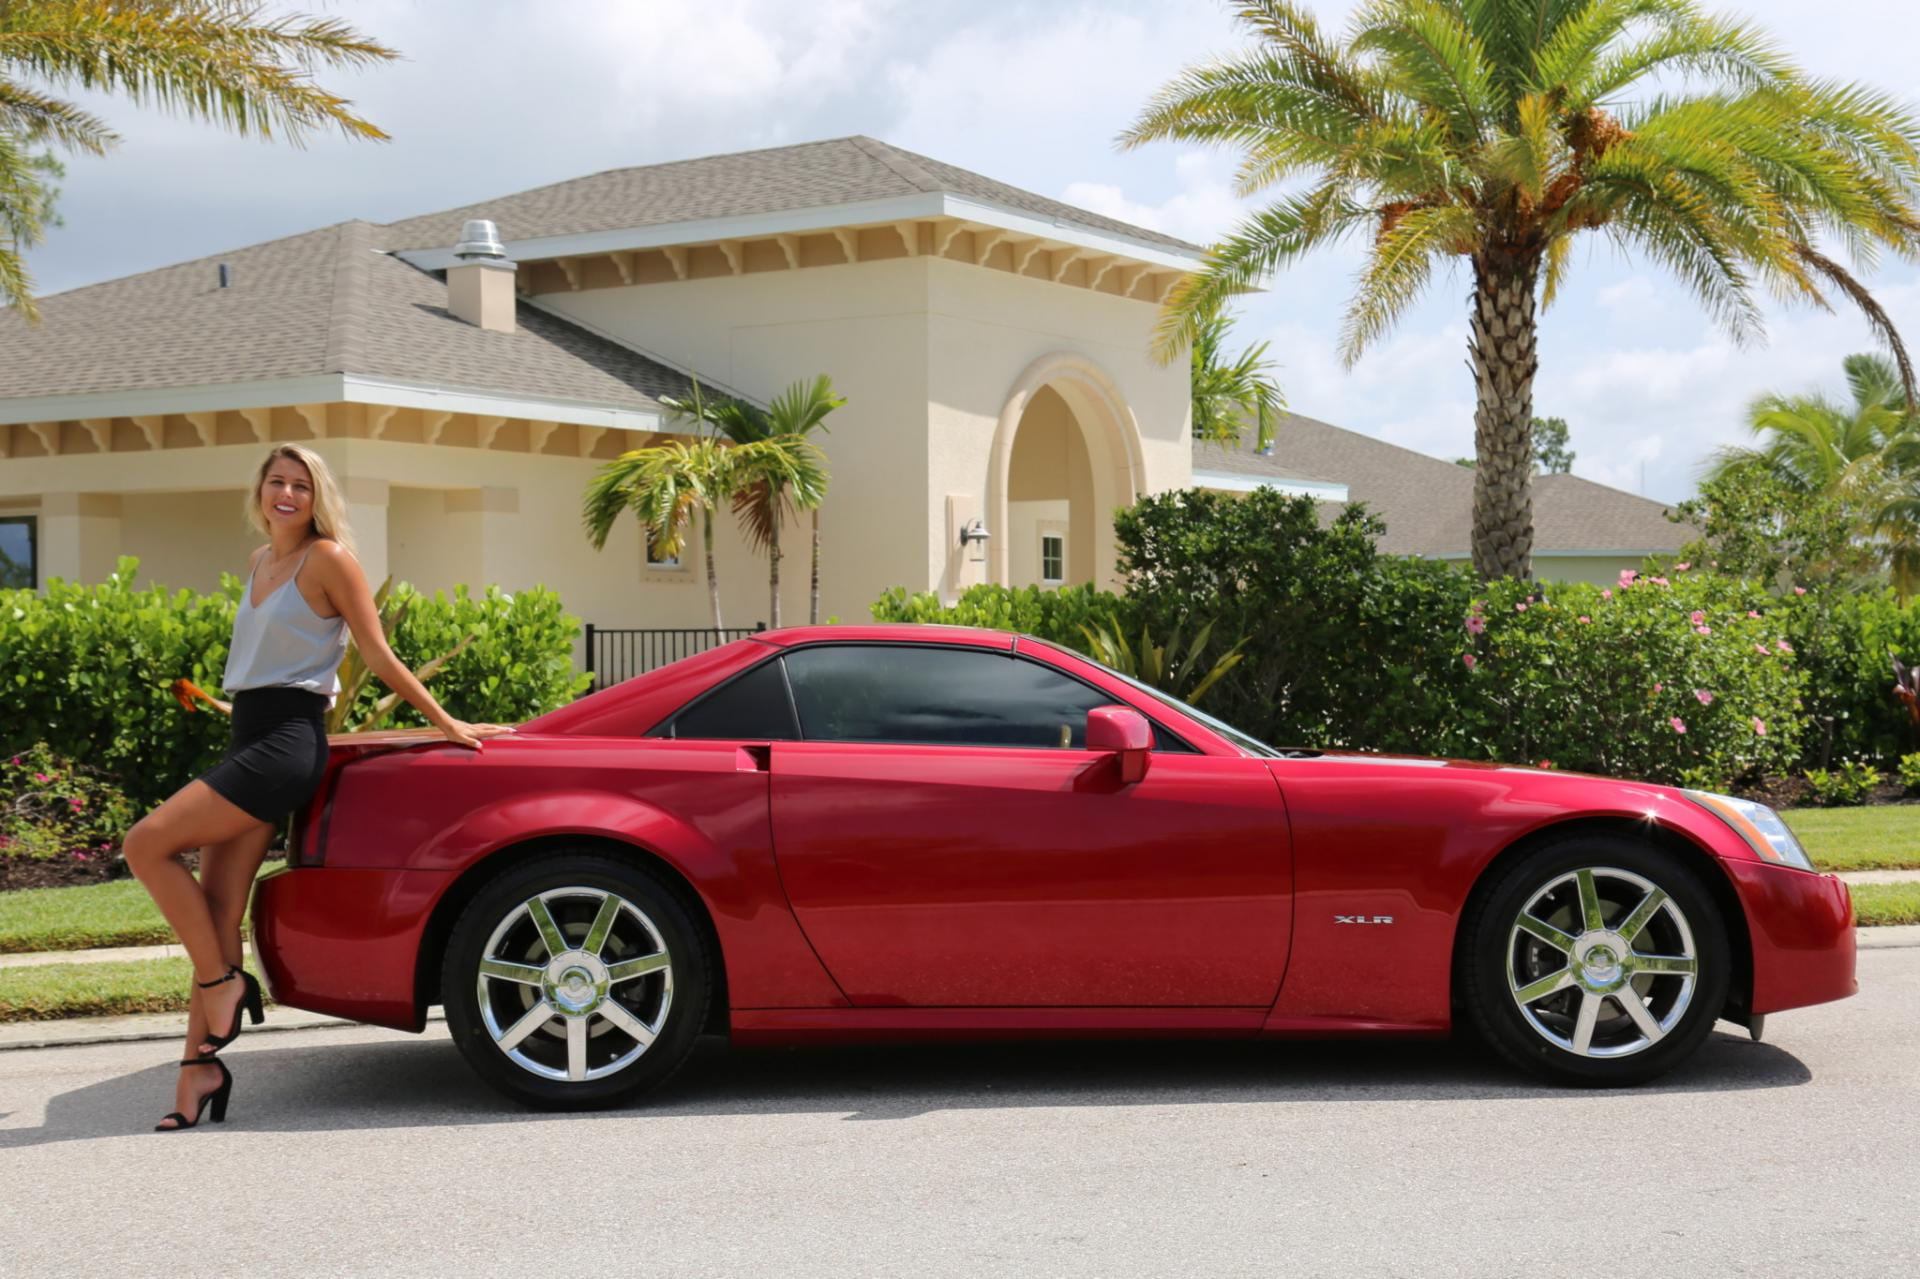 Used 2004 Cadillac XLR for sale Sold at Muscle Cars for Sale Inc. in Fort Myers FL 33912 4